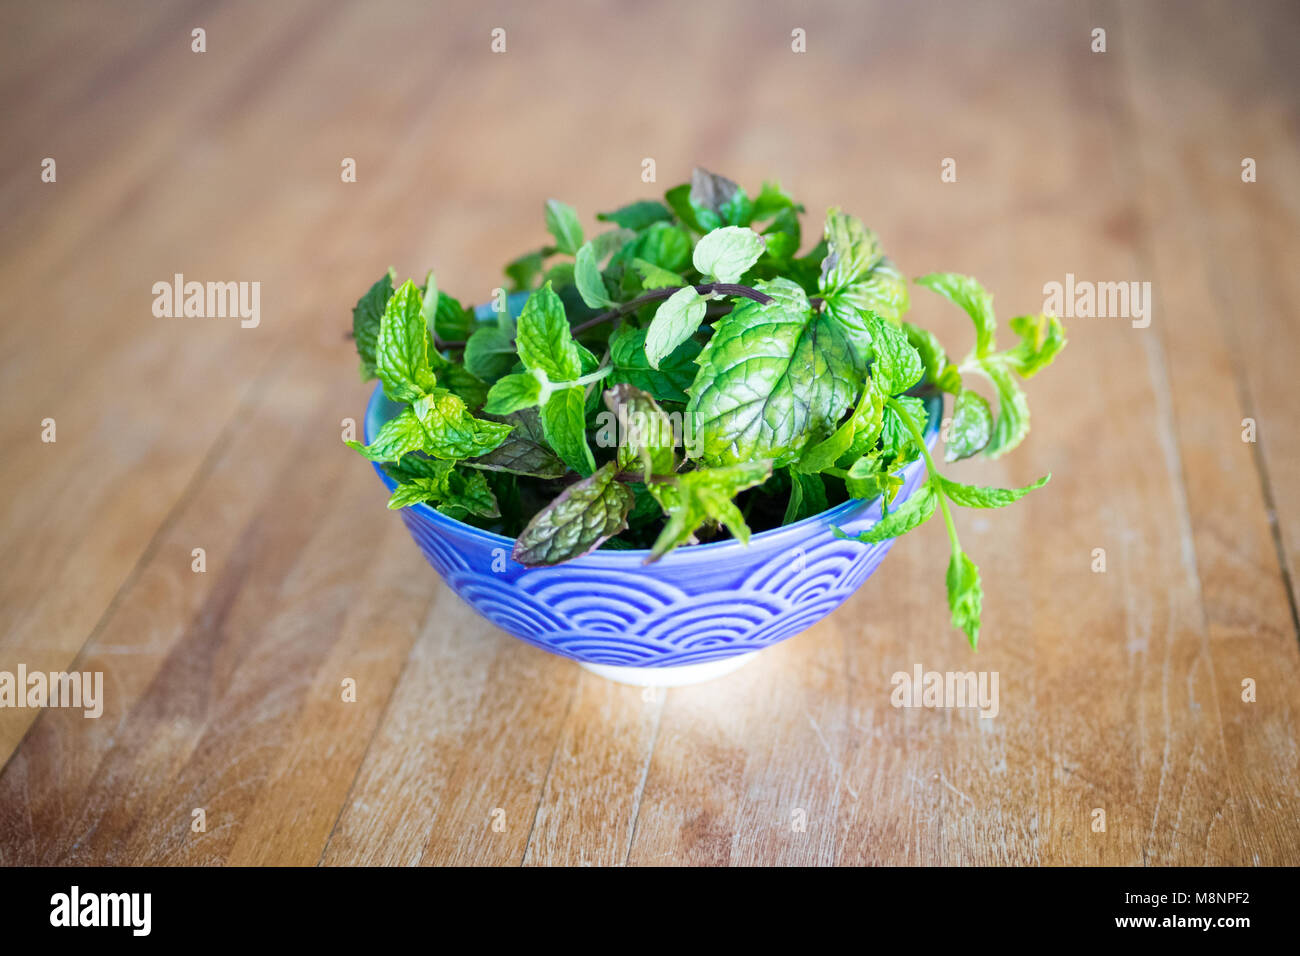 A bowl of freshly harvested peppermint leaves (Mentha × piperita) - Stock Image